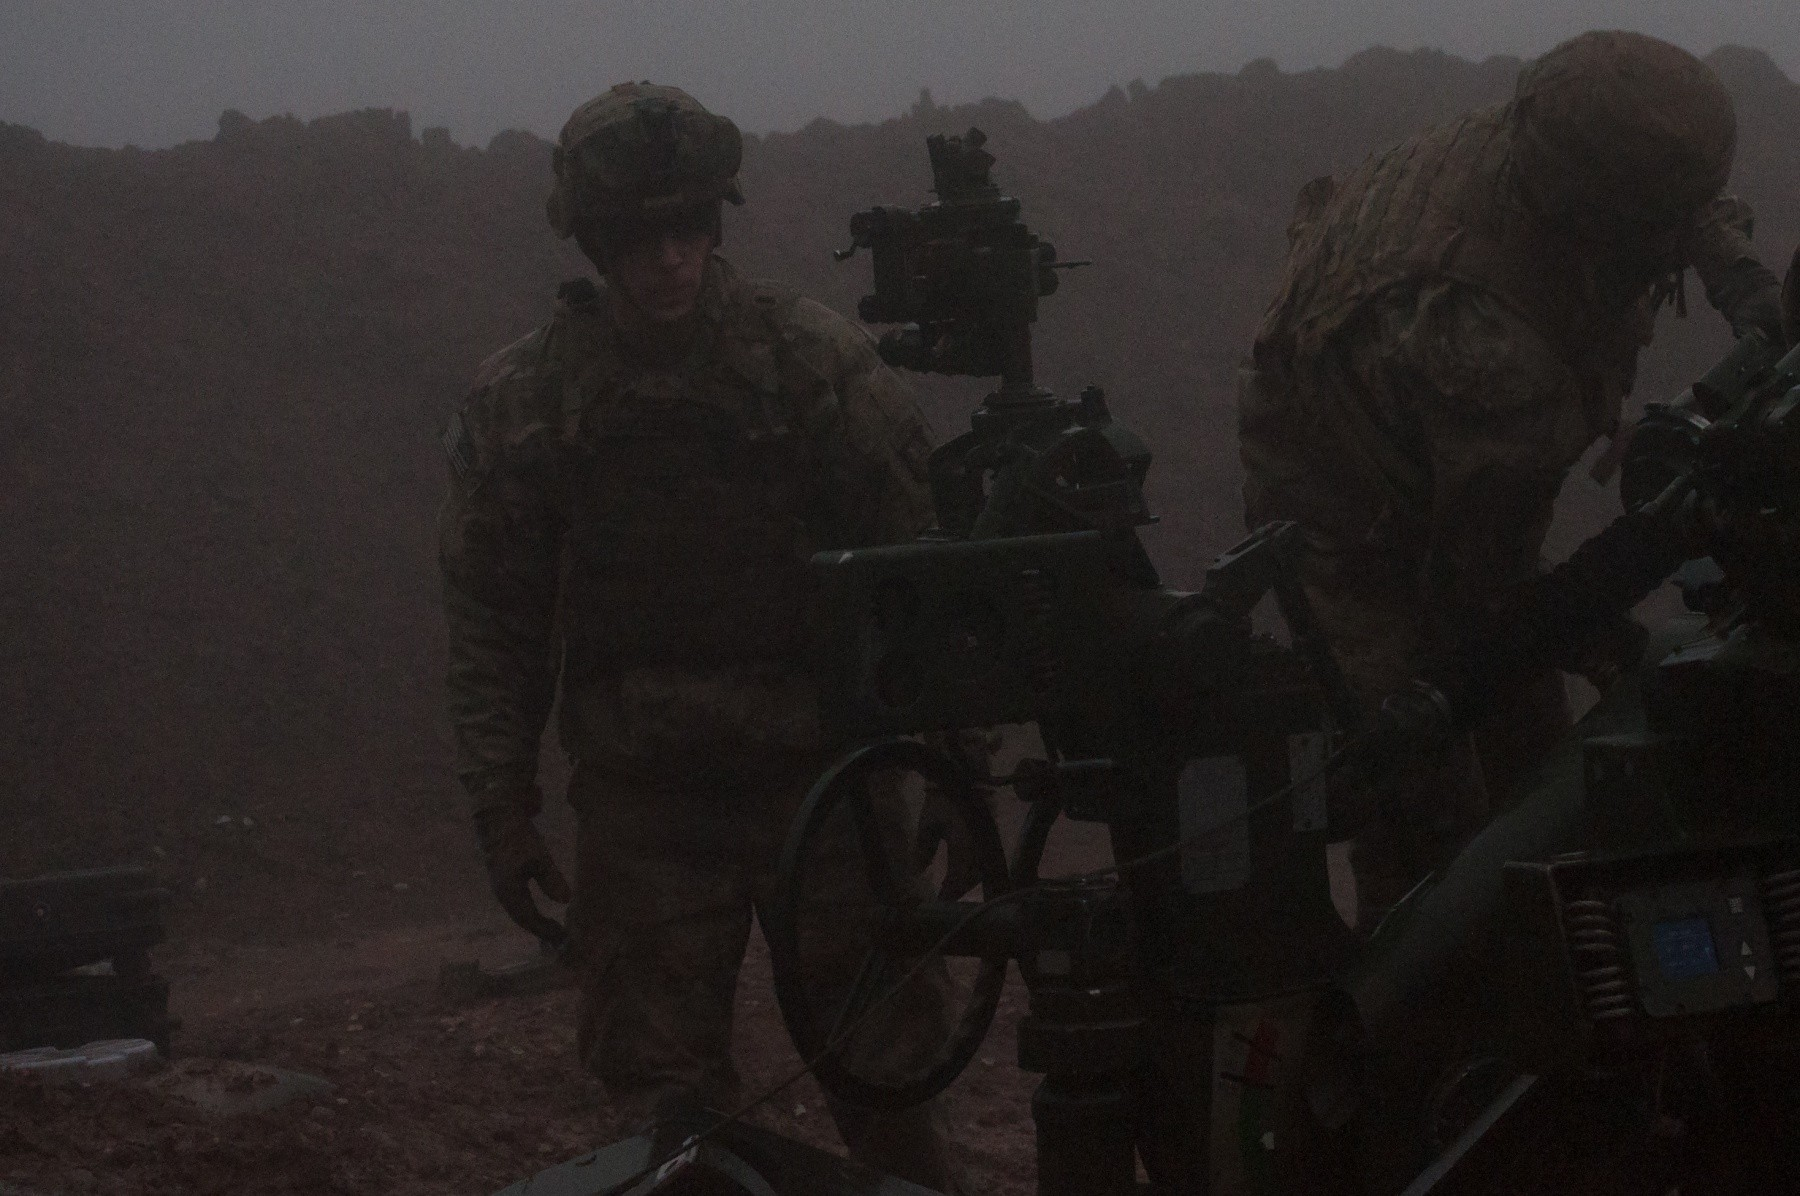 U.S. Army Sgt. Scott Martineau, Battery C, 1st Battalion, 320th Field Artillery Regiment, Task Force Strike, moves towards his position on an M777 howitzer during a fire mission to support the security forces during the Mosul counteroffensive, Dec. 25, 2016, in northern Iraq. Battery C is supporting the ISF with indirect fires in their fight against ISIL. (Photo Credit: 1st Lt. Daniel Johnson)